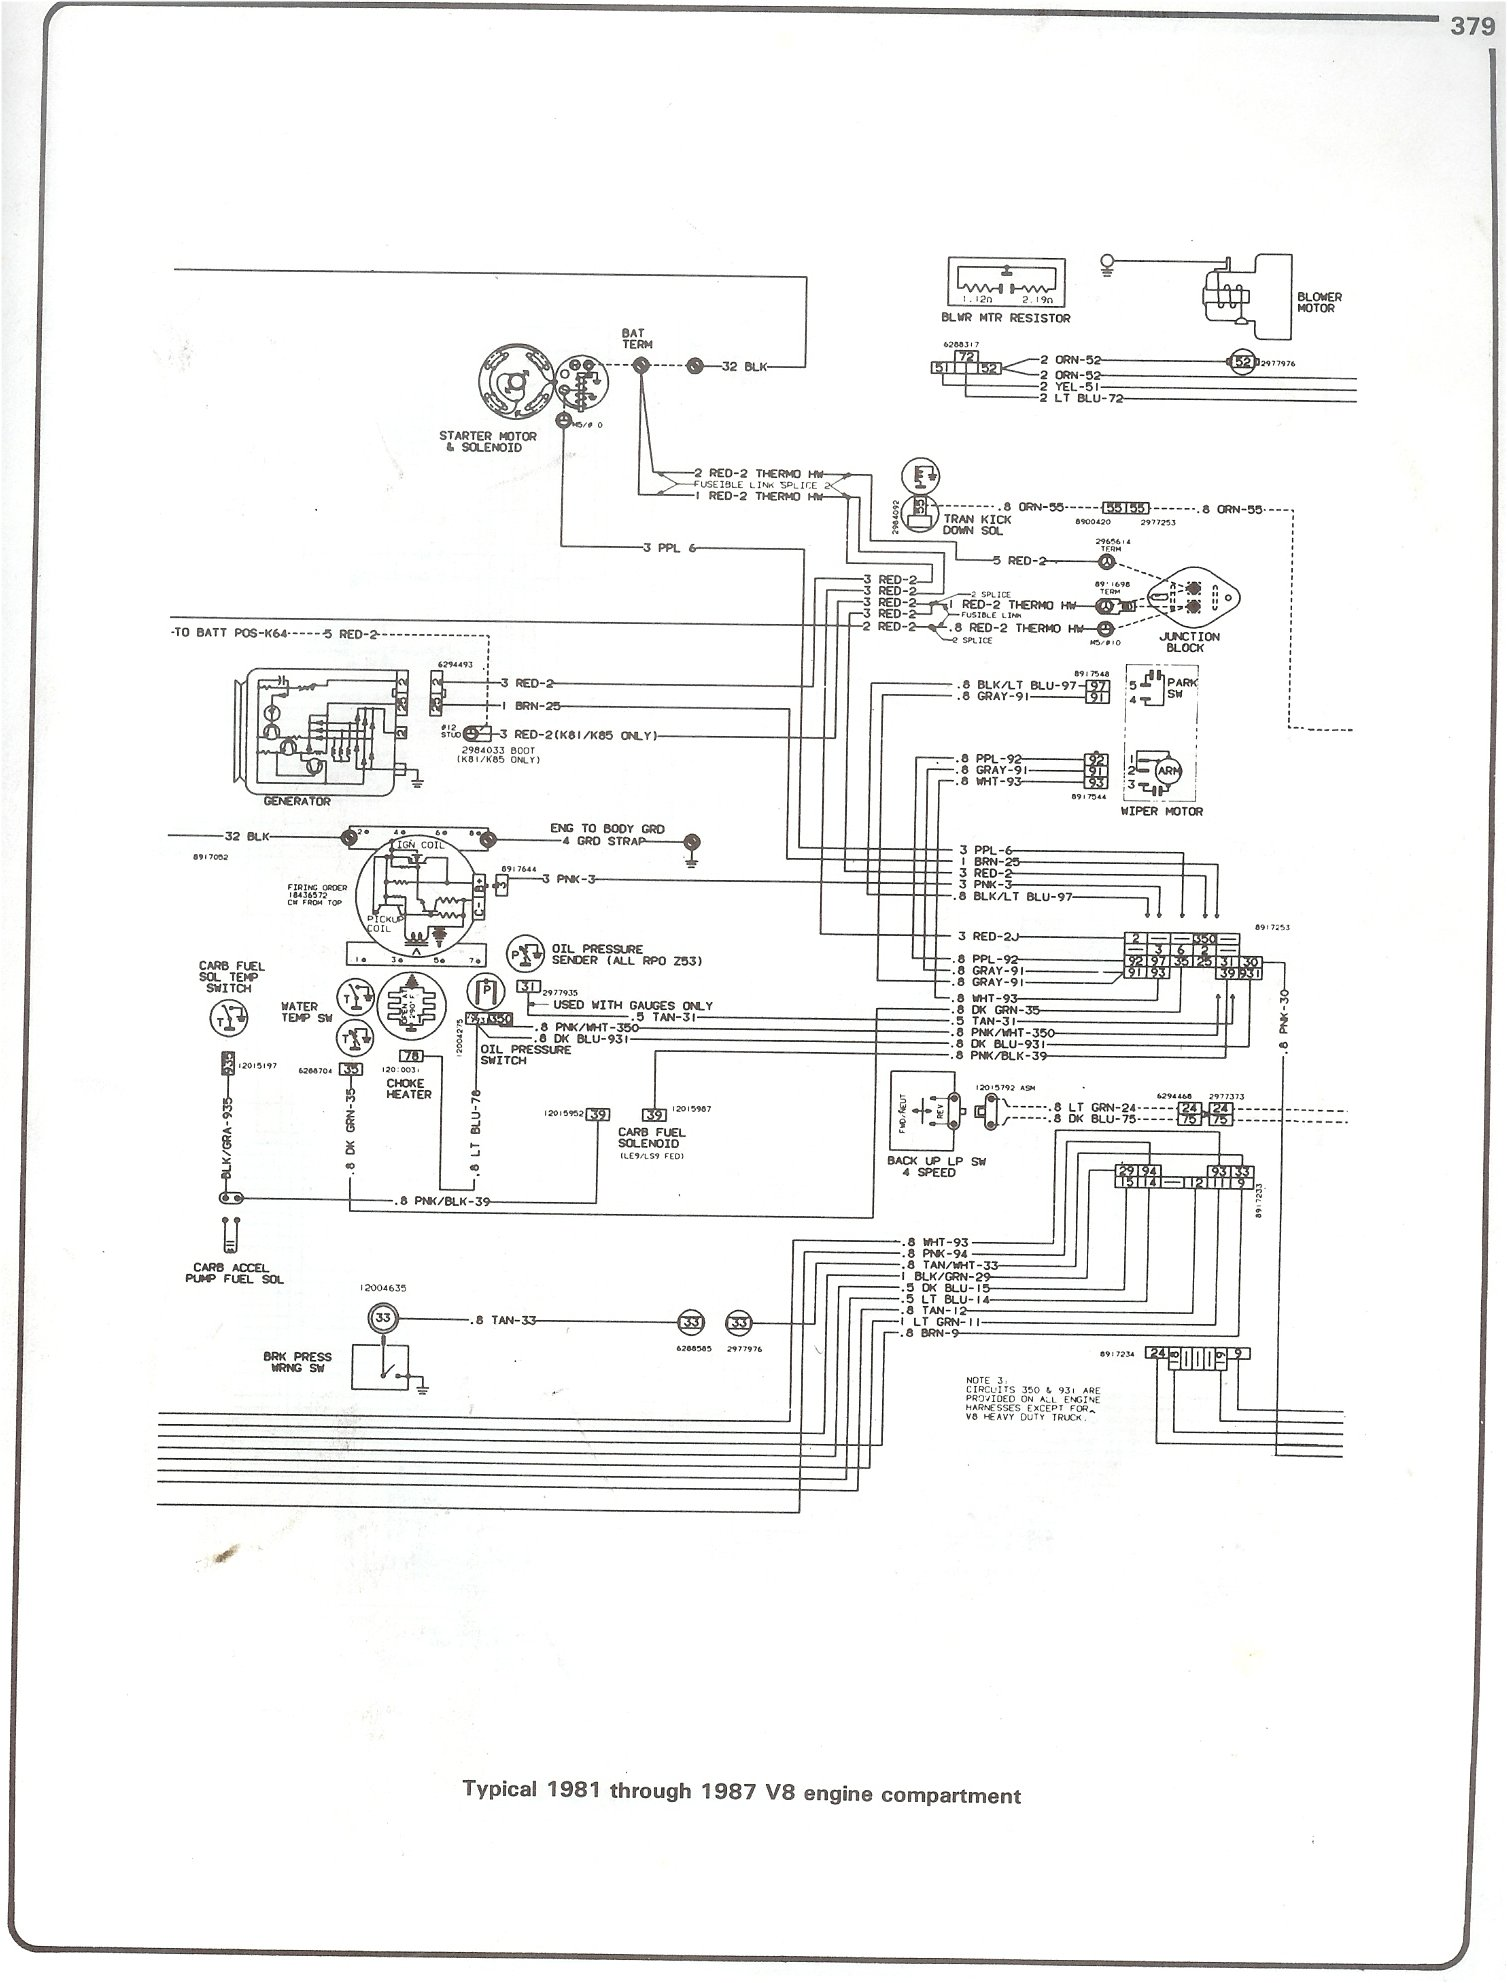 hight resolution of 86 suburban wiring diagram detailed schematics diagram rh lelandlutheran com 1988 gmc truck wiring diagram gmc